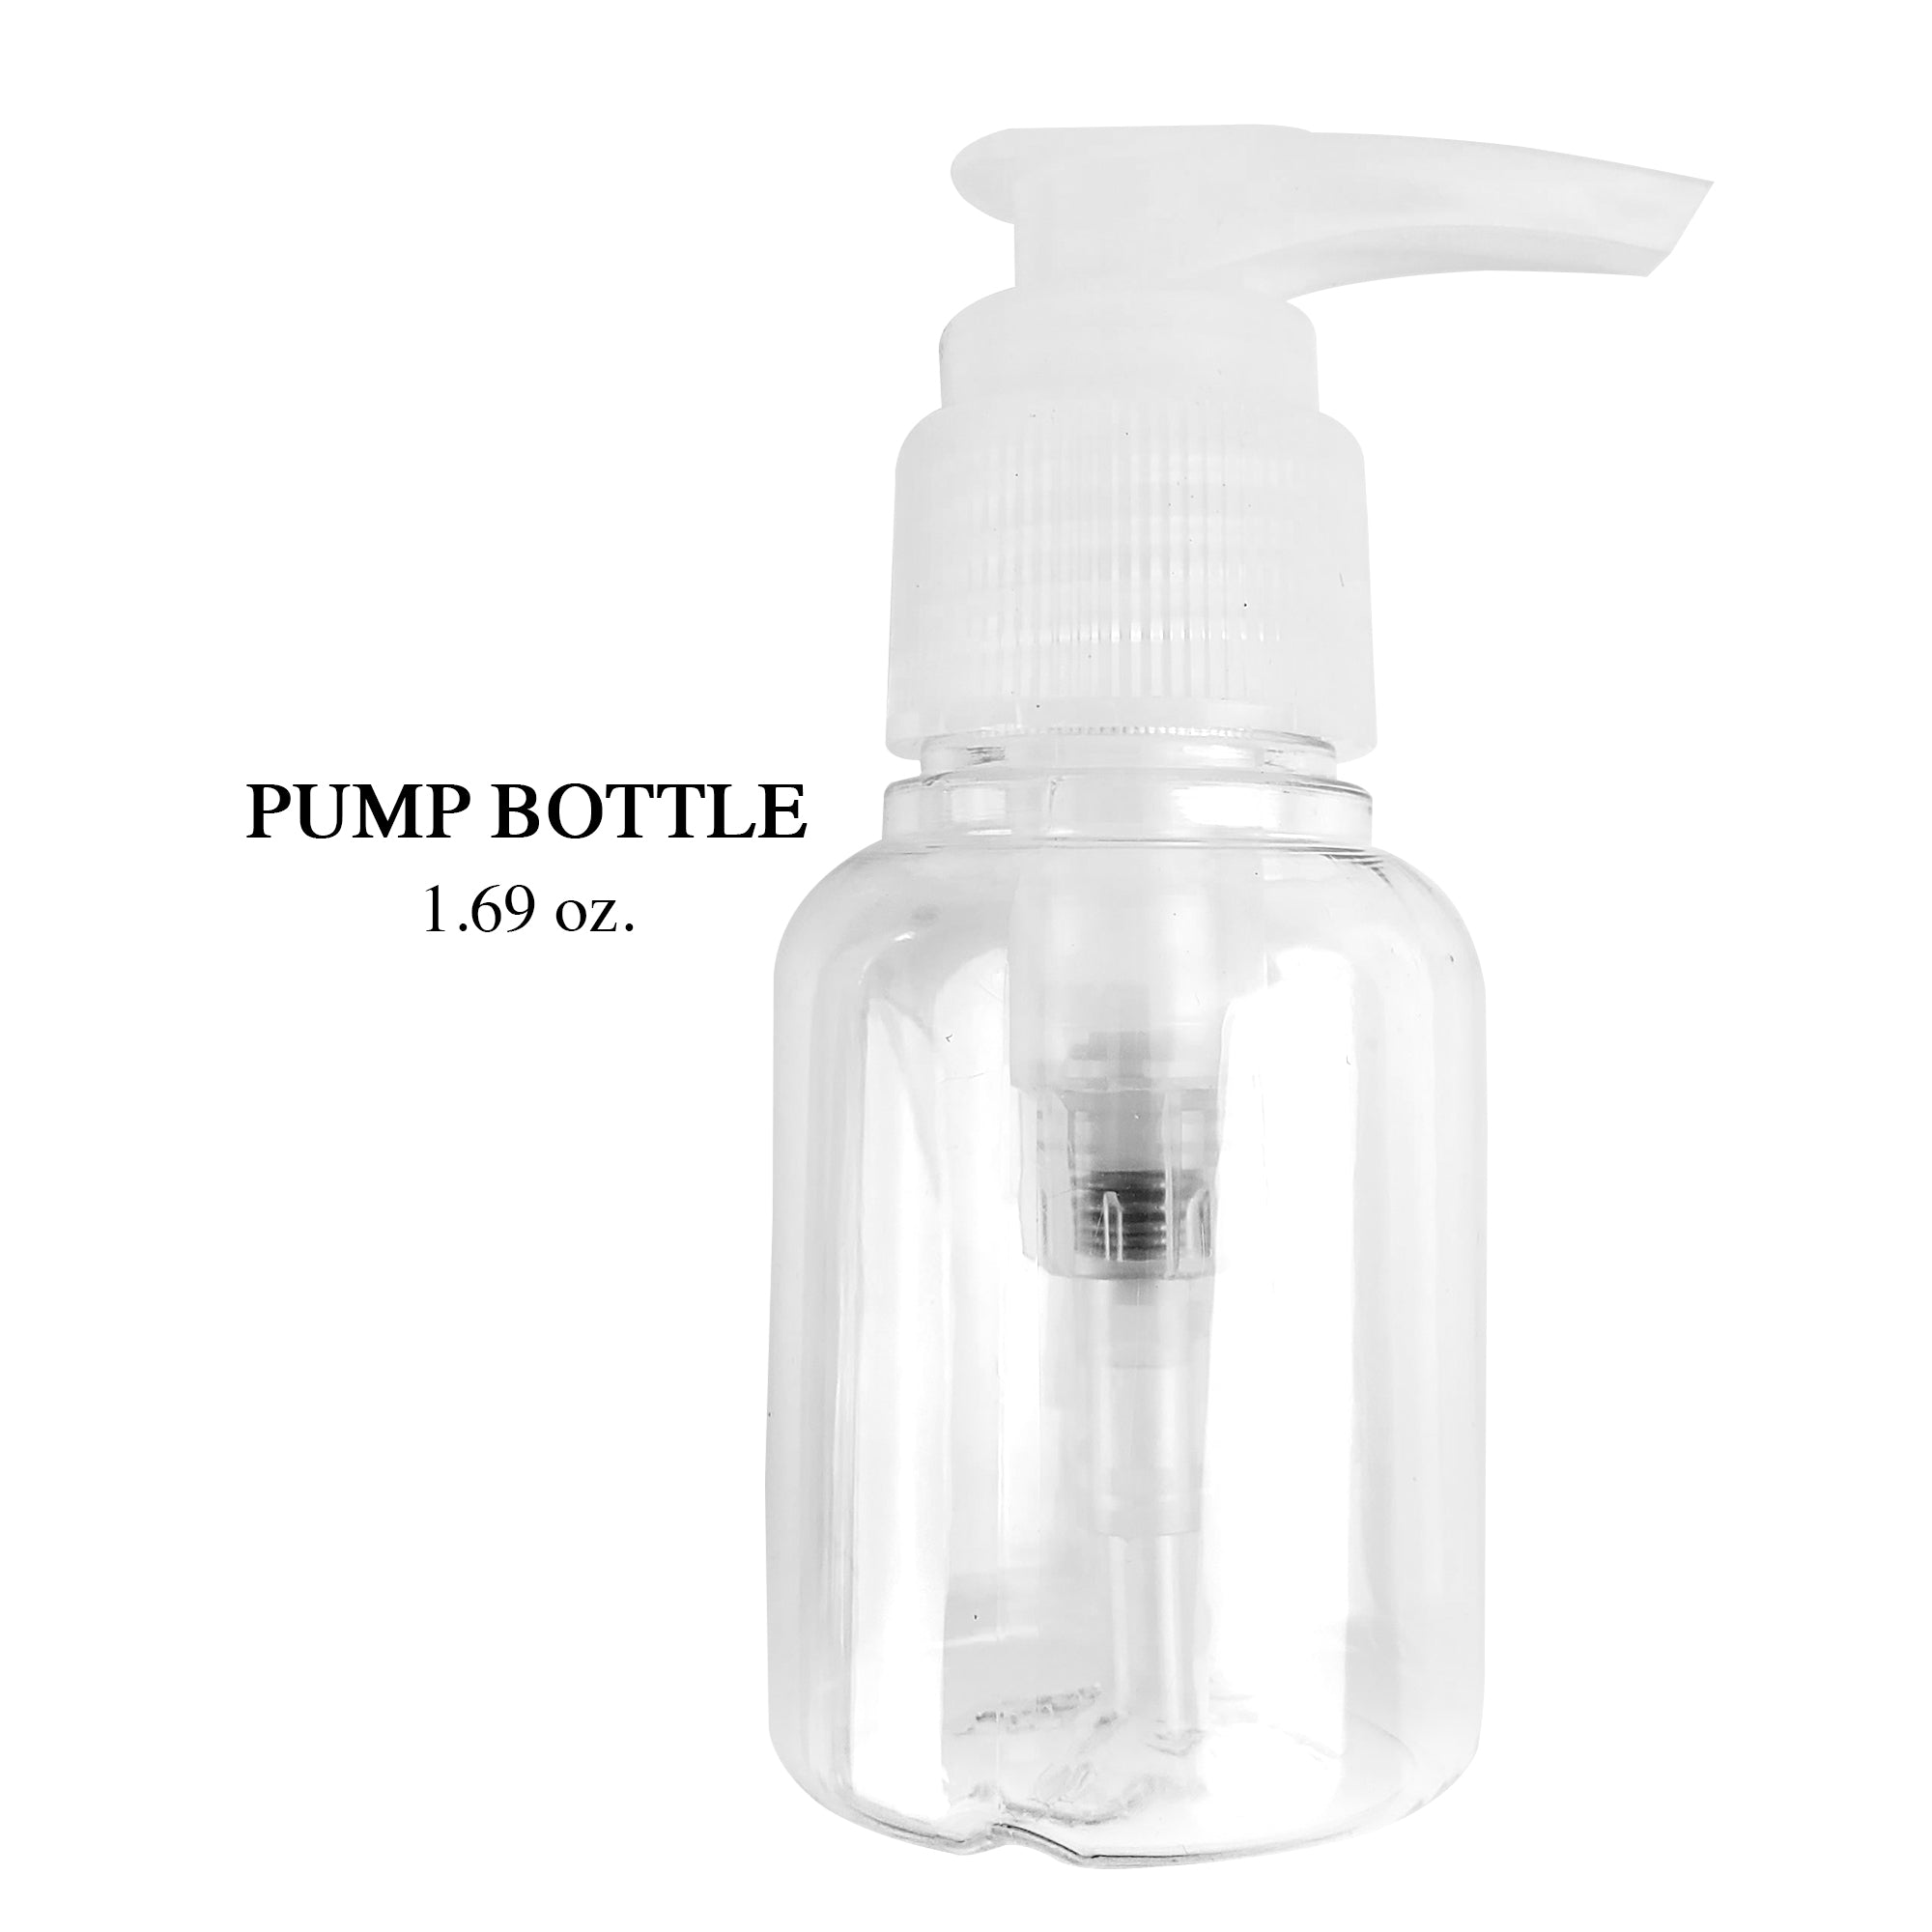 Small Pump Bottle 1.69 oz (D114)